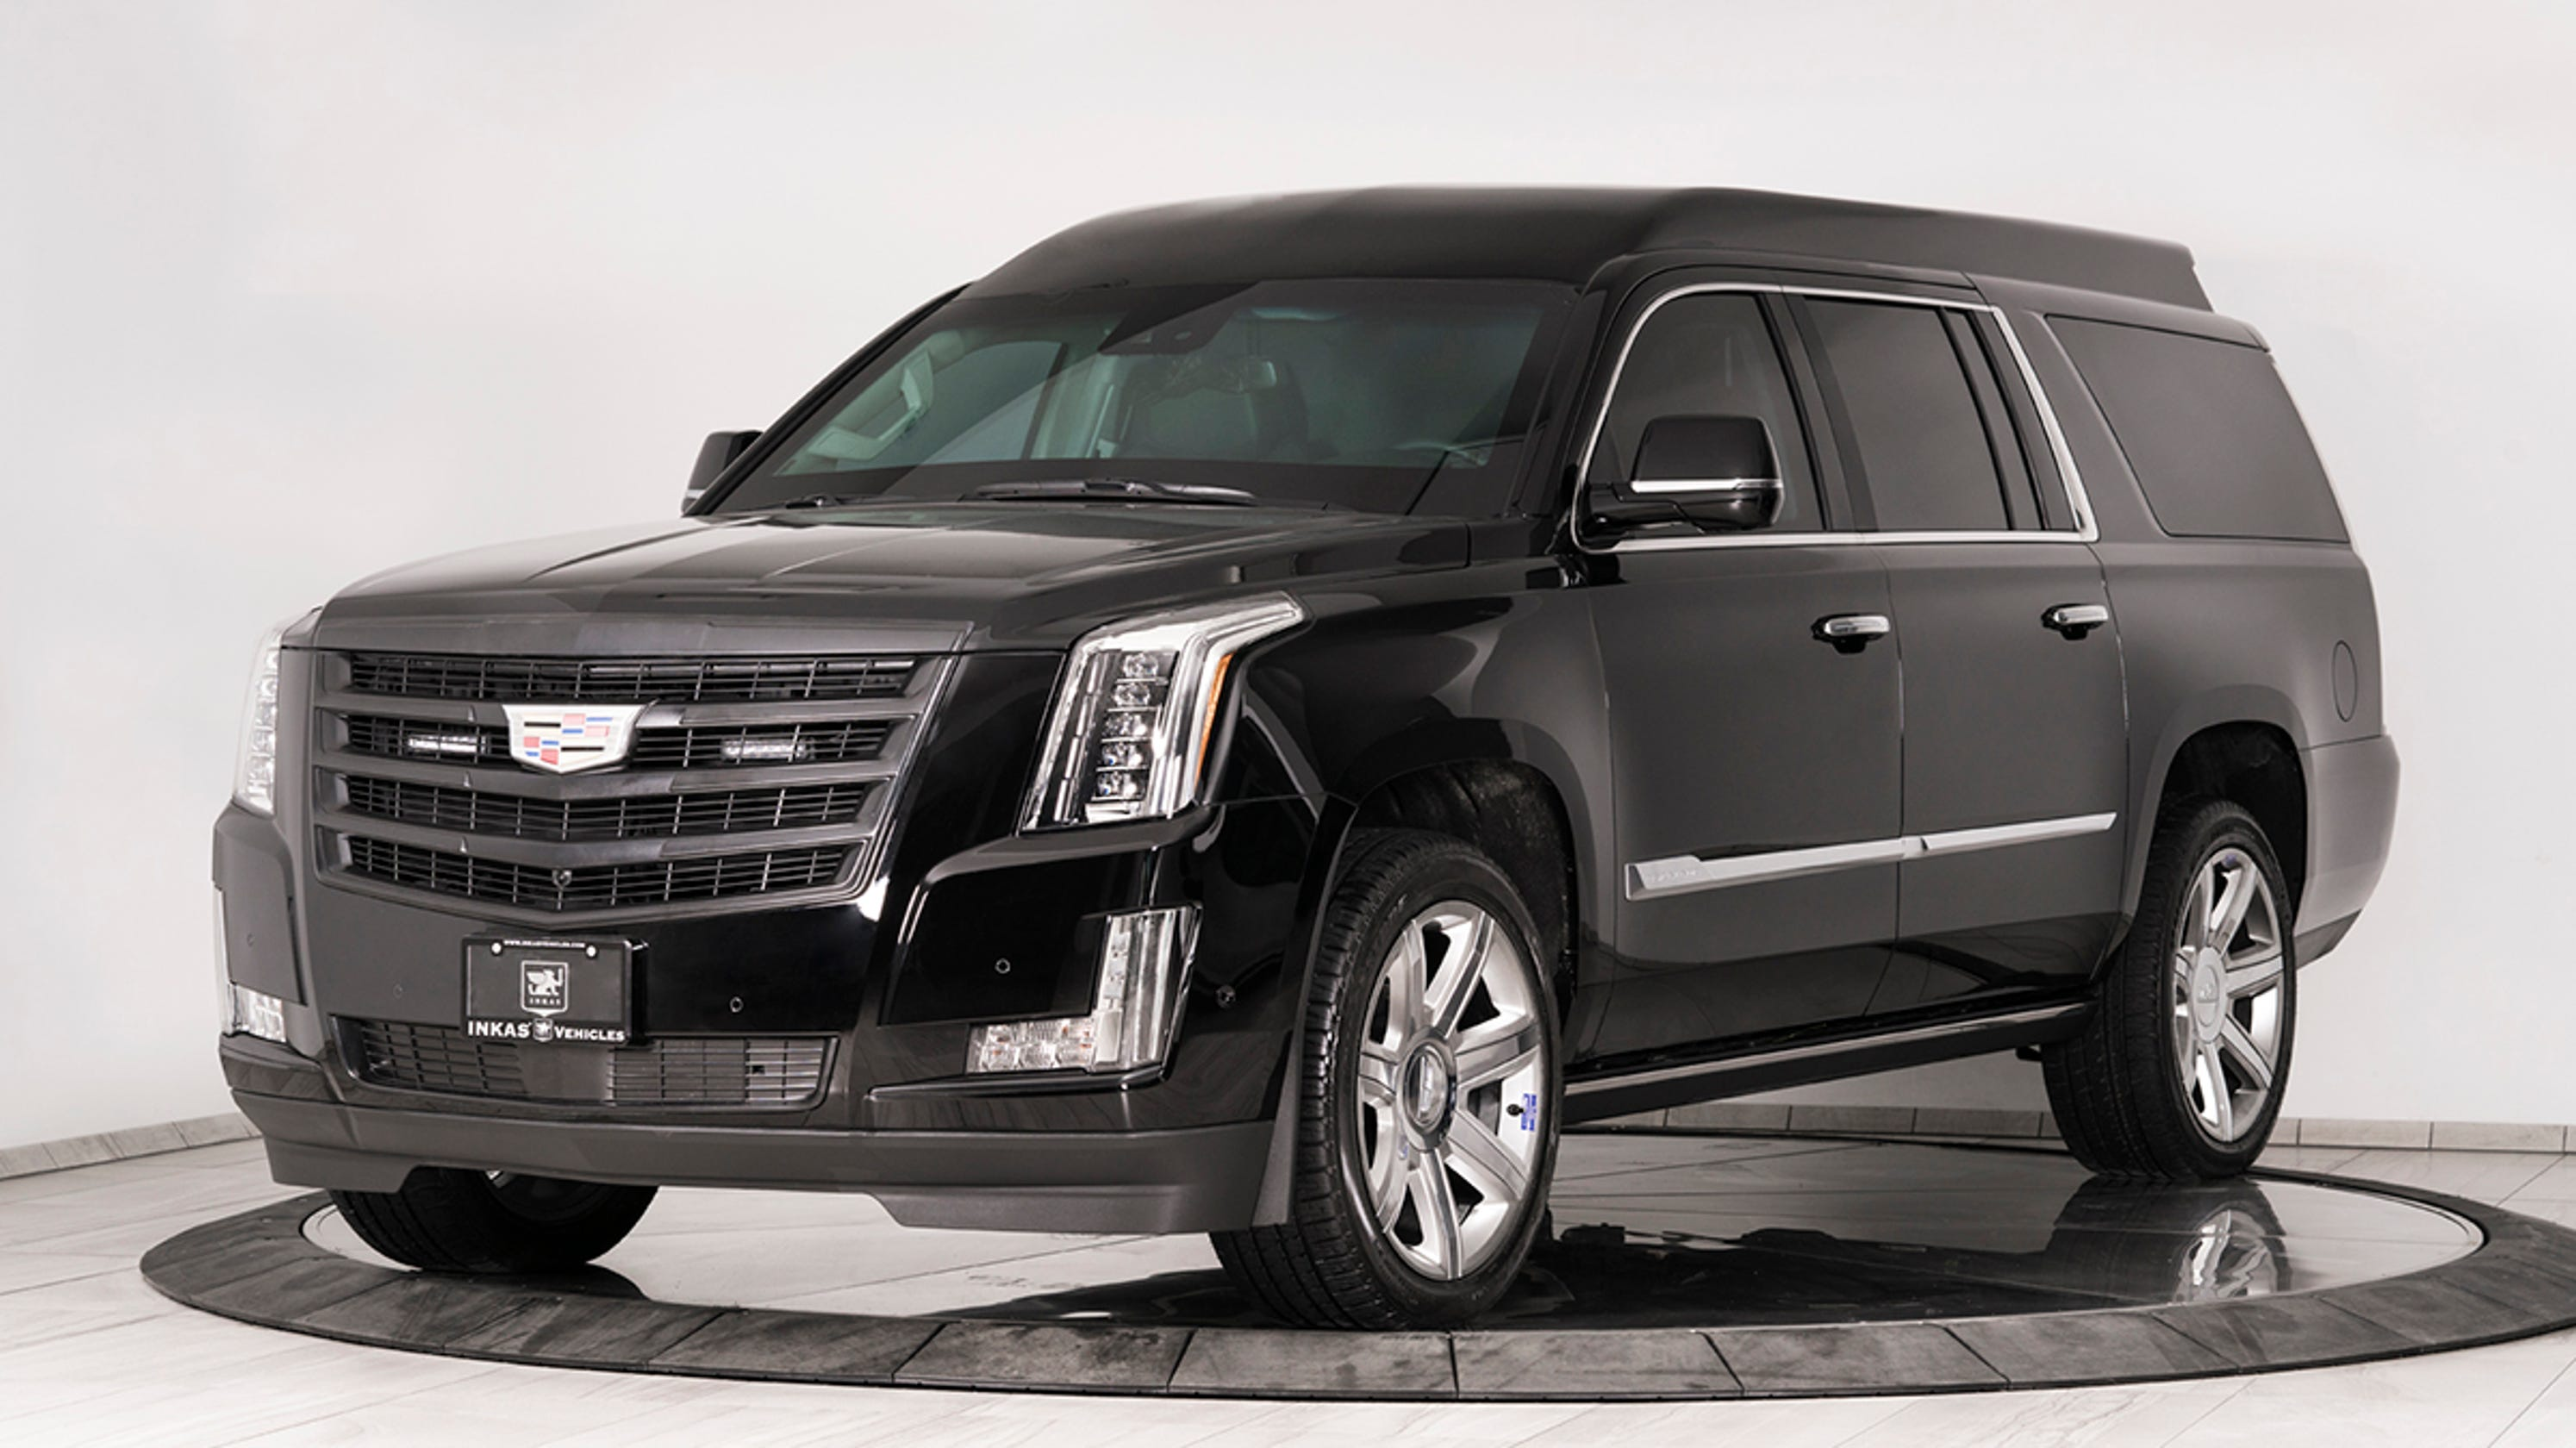 500k Bulletproof Souped Up Cadillac Escalade Built For Rich And Famous